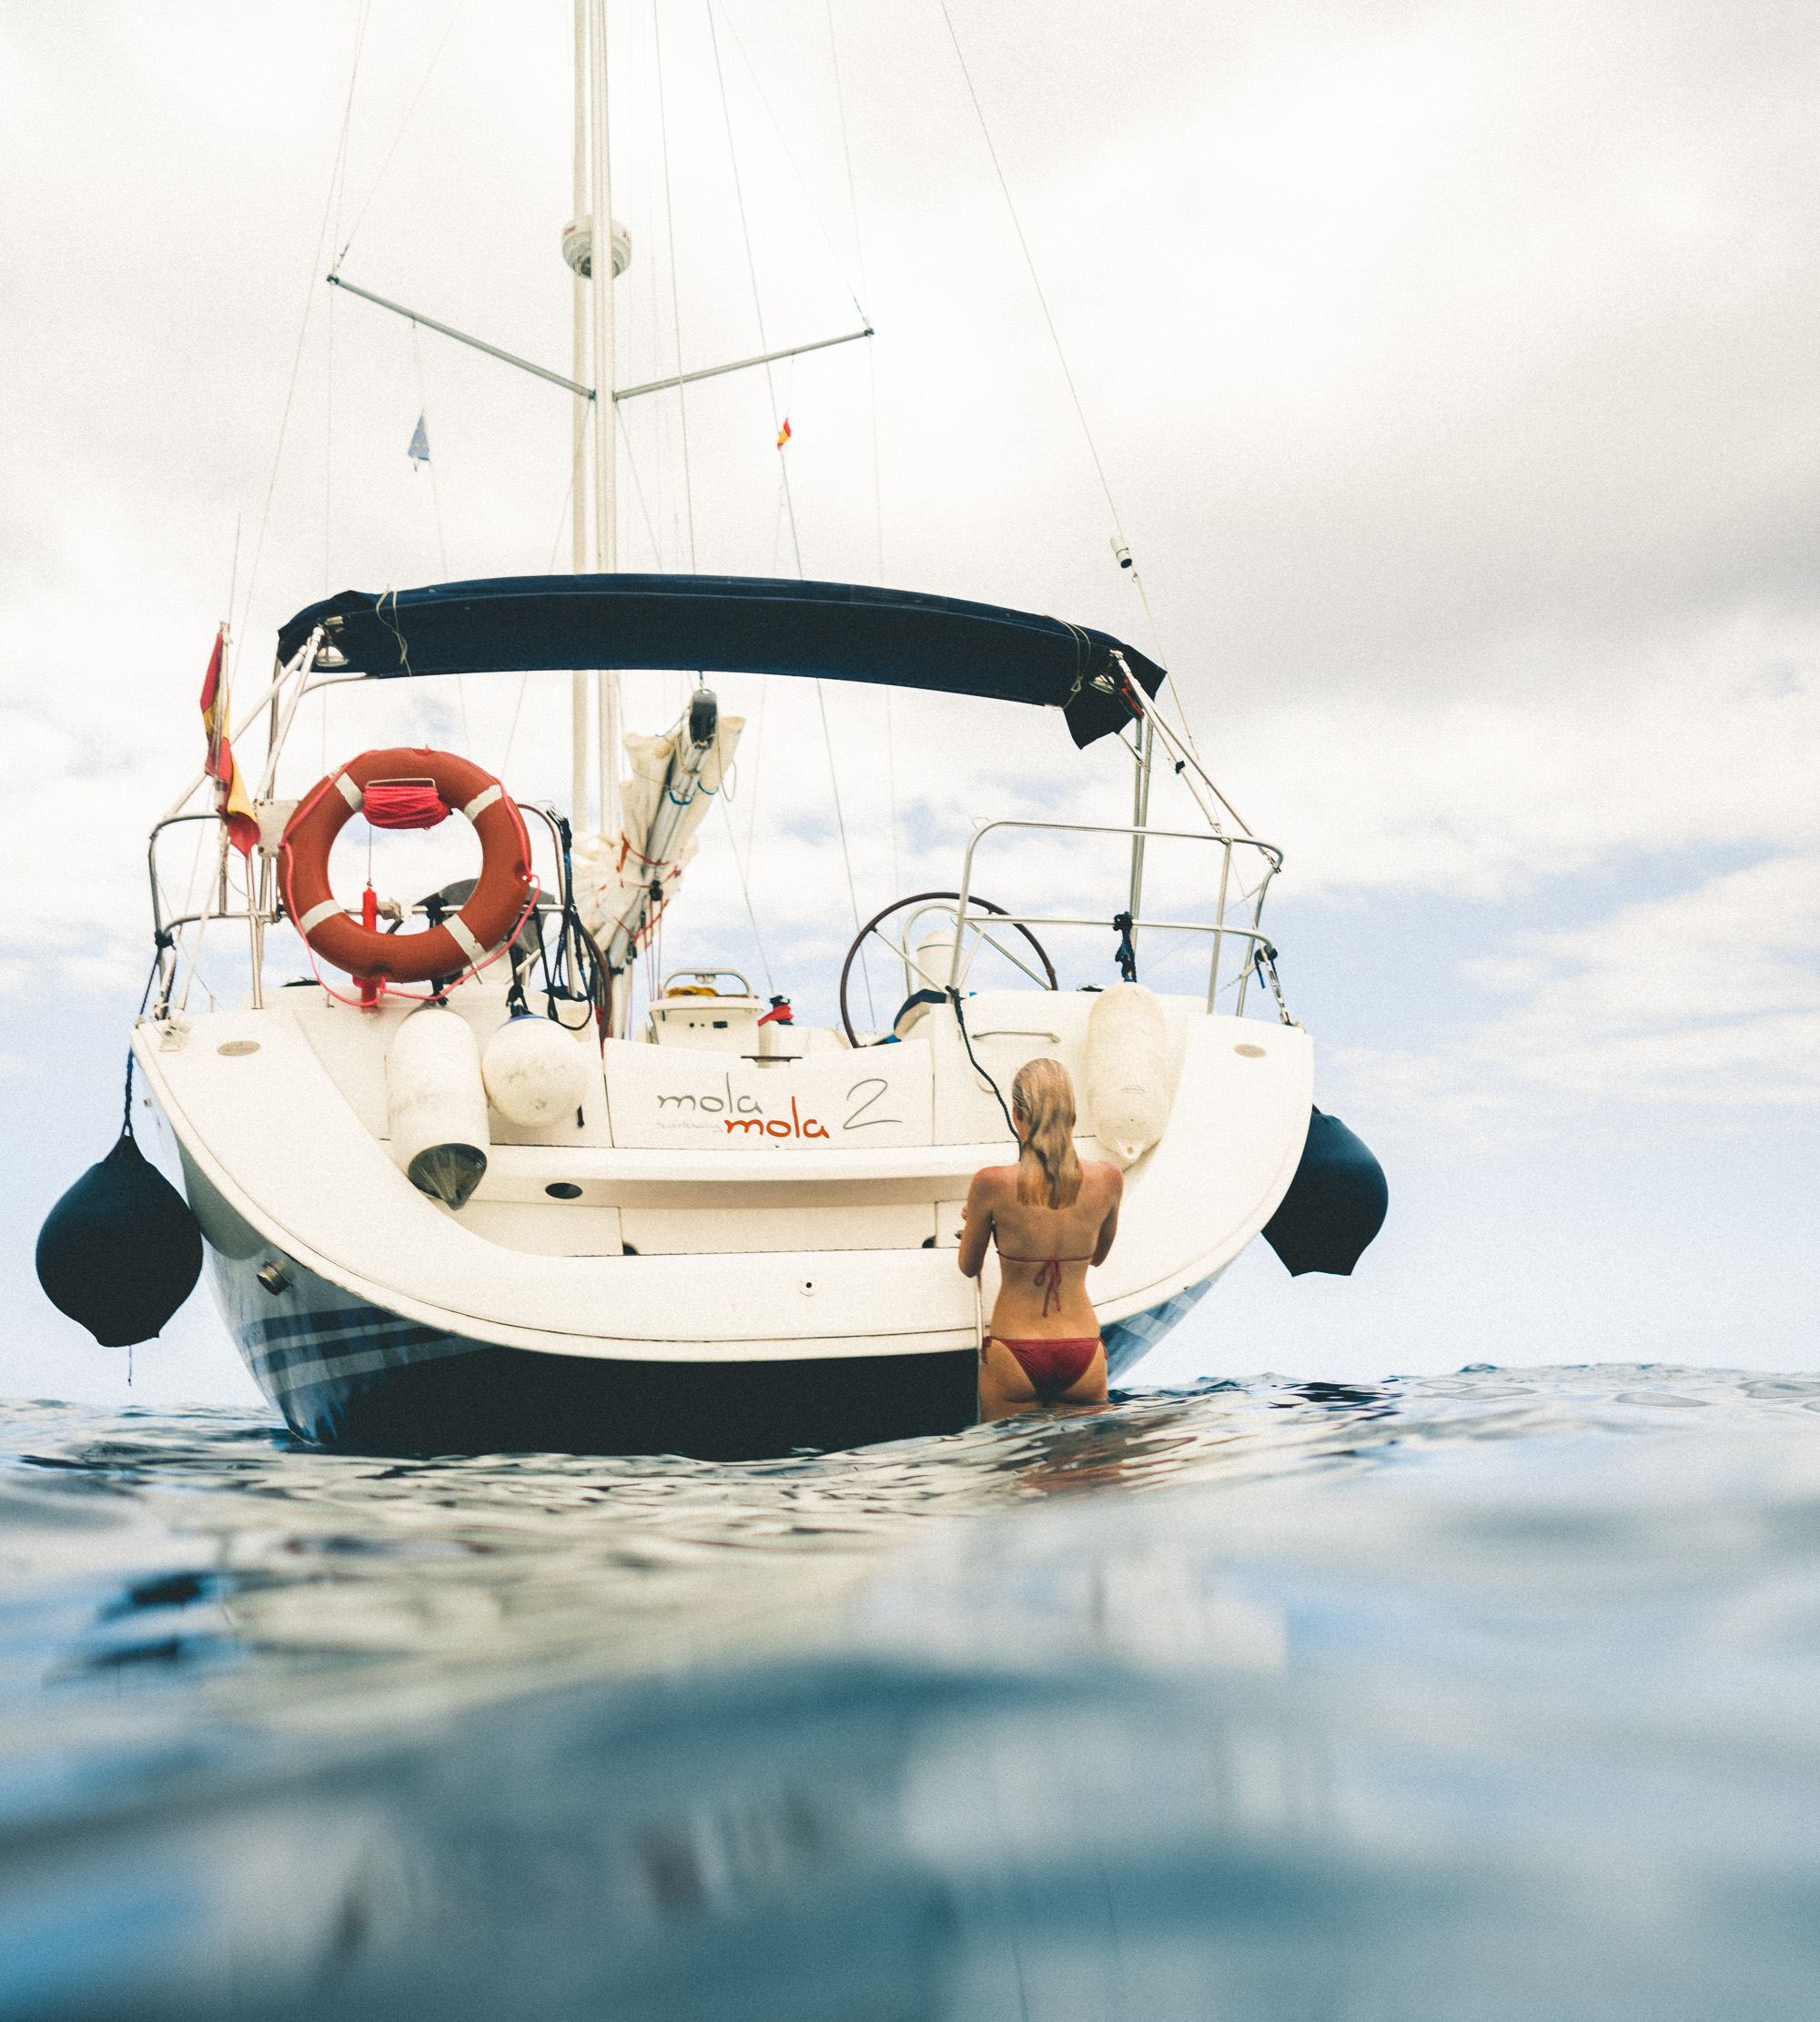 Boating in Tenerife, Canary Islands, Spain